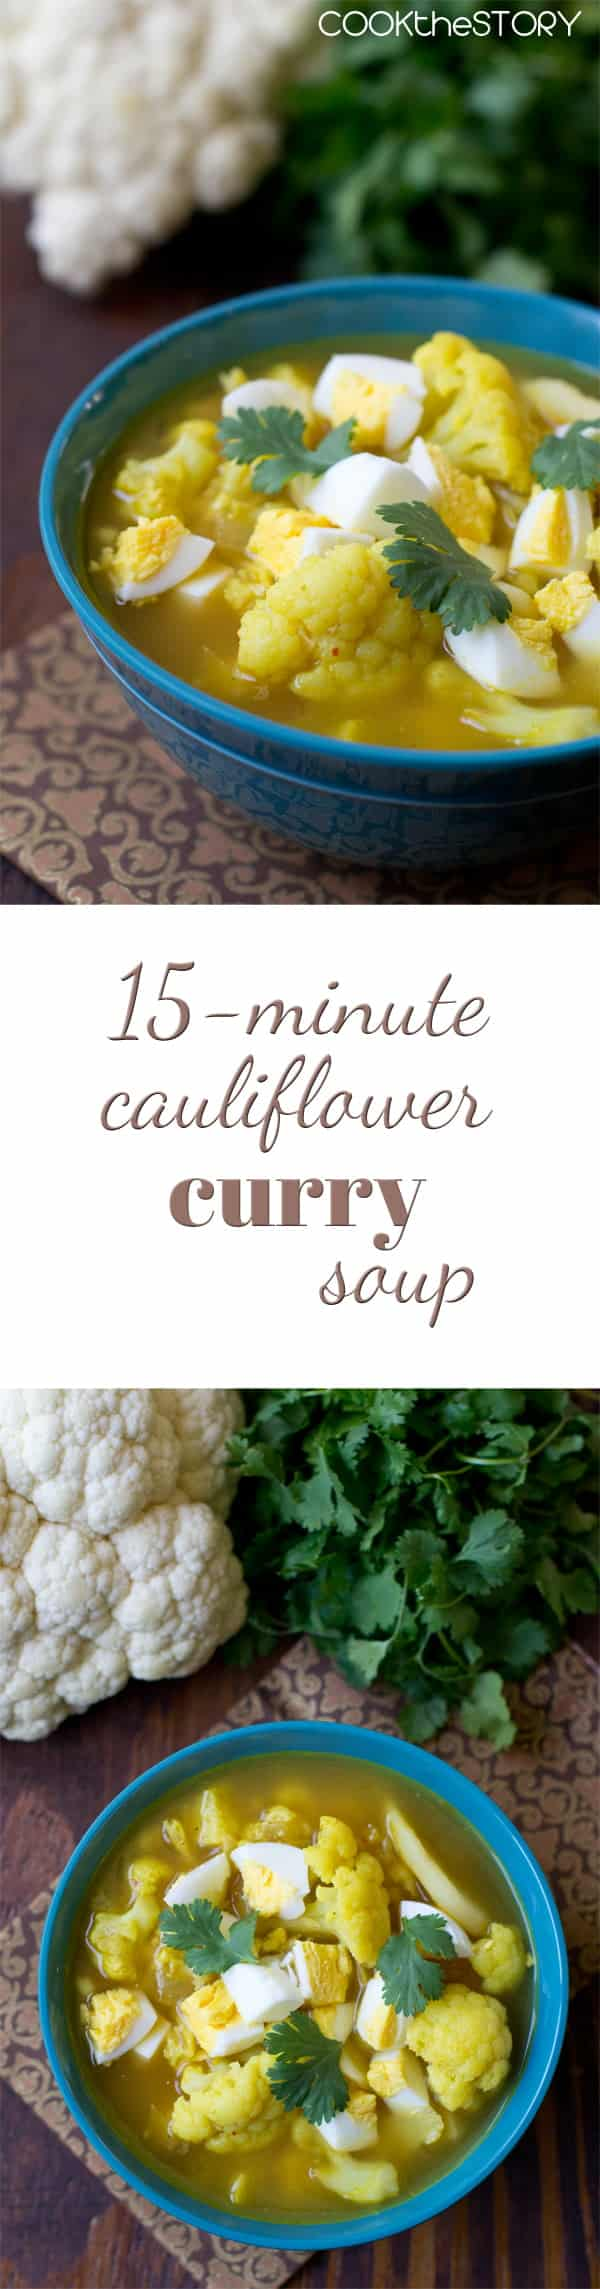 Cauliflower Curry Soup